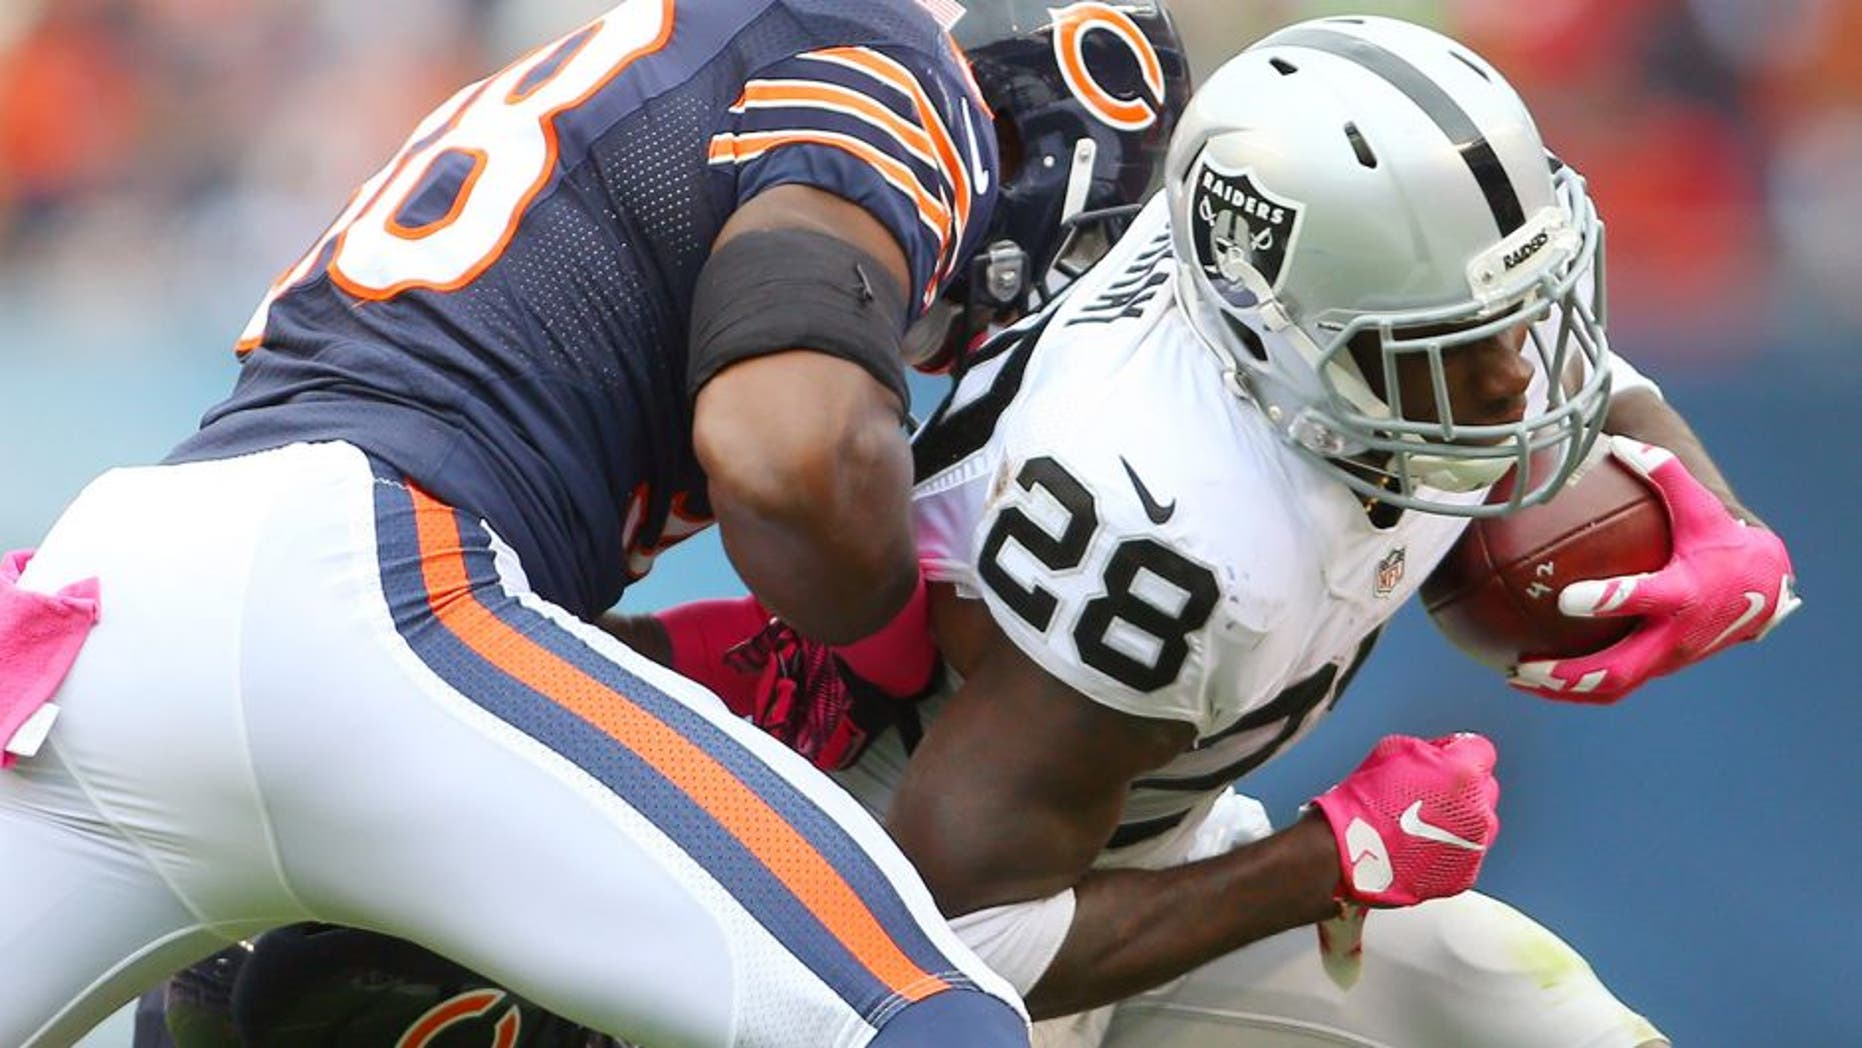 Oct 4, 2015; Chicago, IL, USA; Oakland Raiders running back Latavius Murray (28) is tackled by Chicago Bears free safety Adrian Amos (38) and linebacker Lamarr Houston (99) during the second quarter at Soldier Field. Mandatory Credit: Jerry Lai-USA TODAY Sports